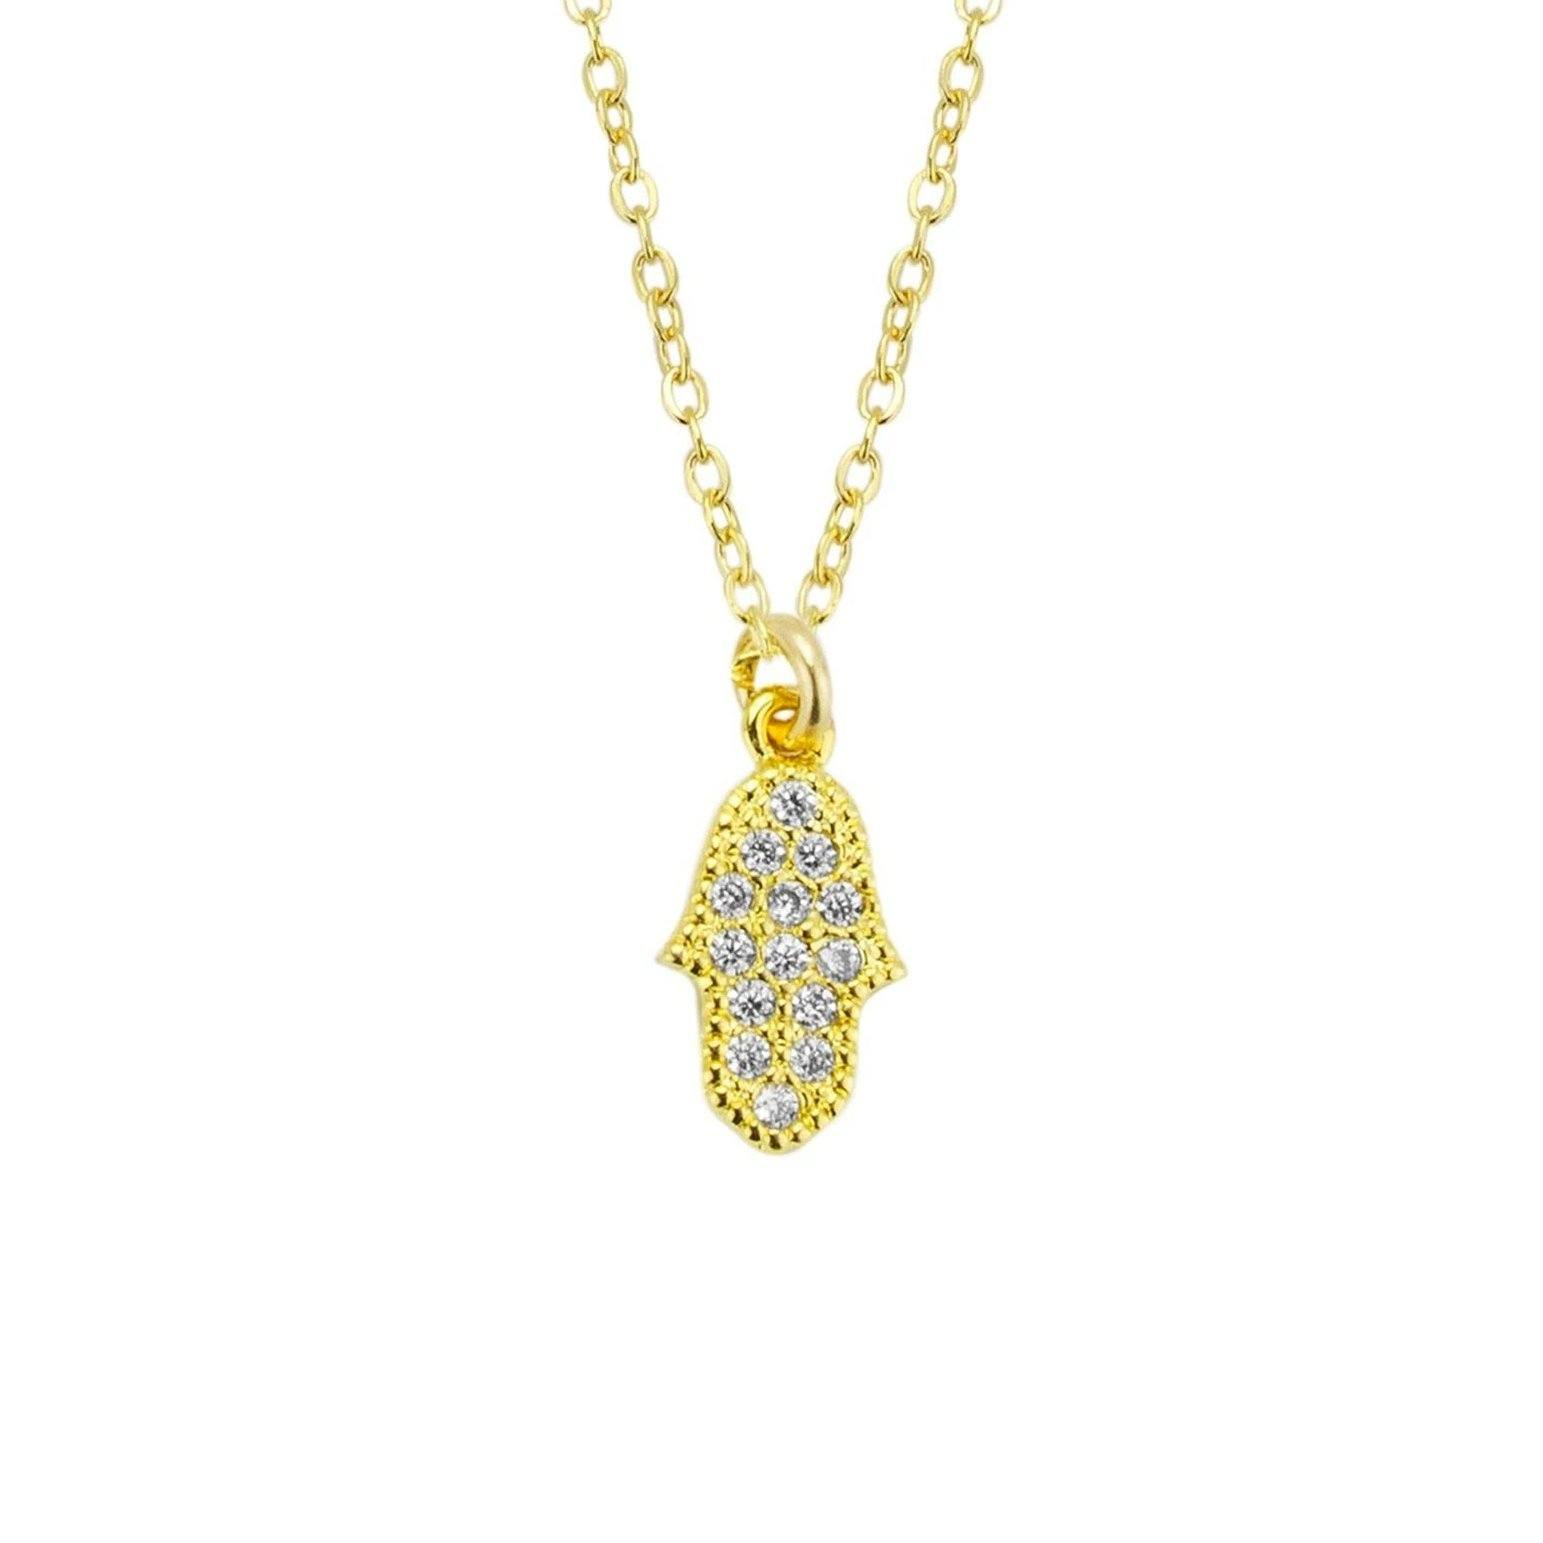 Up close image of the Hamsa Hand Necklace pendant with tiny crystals.